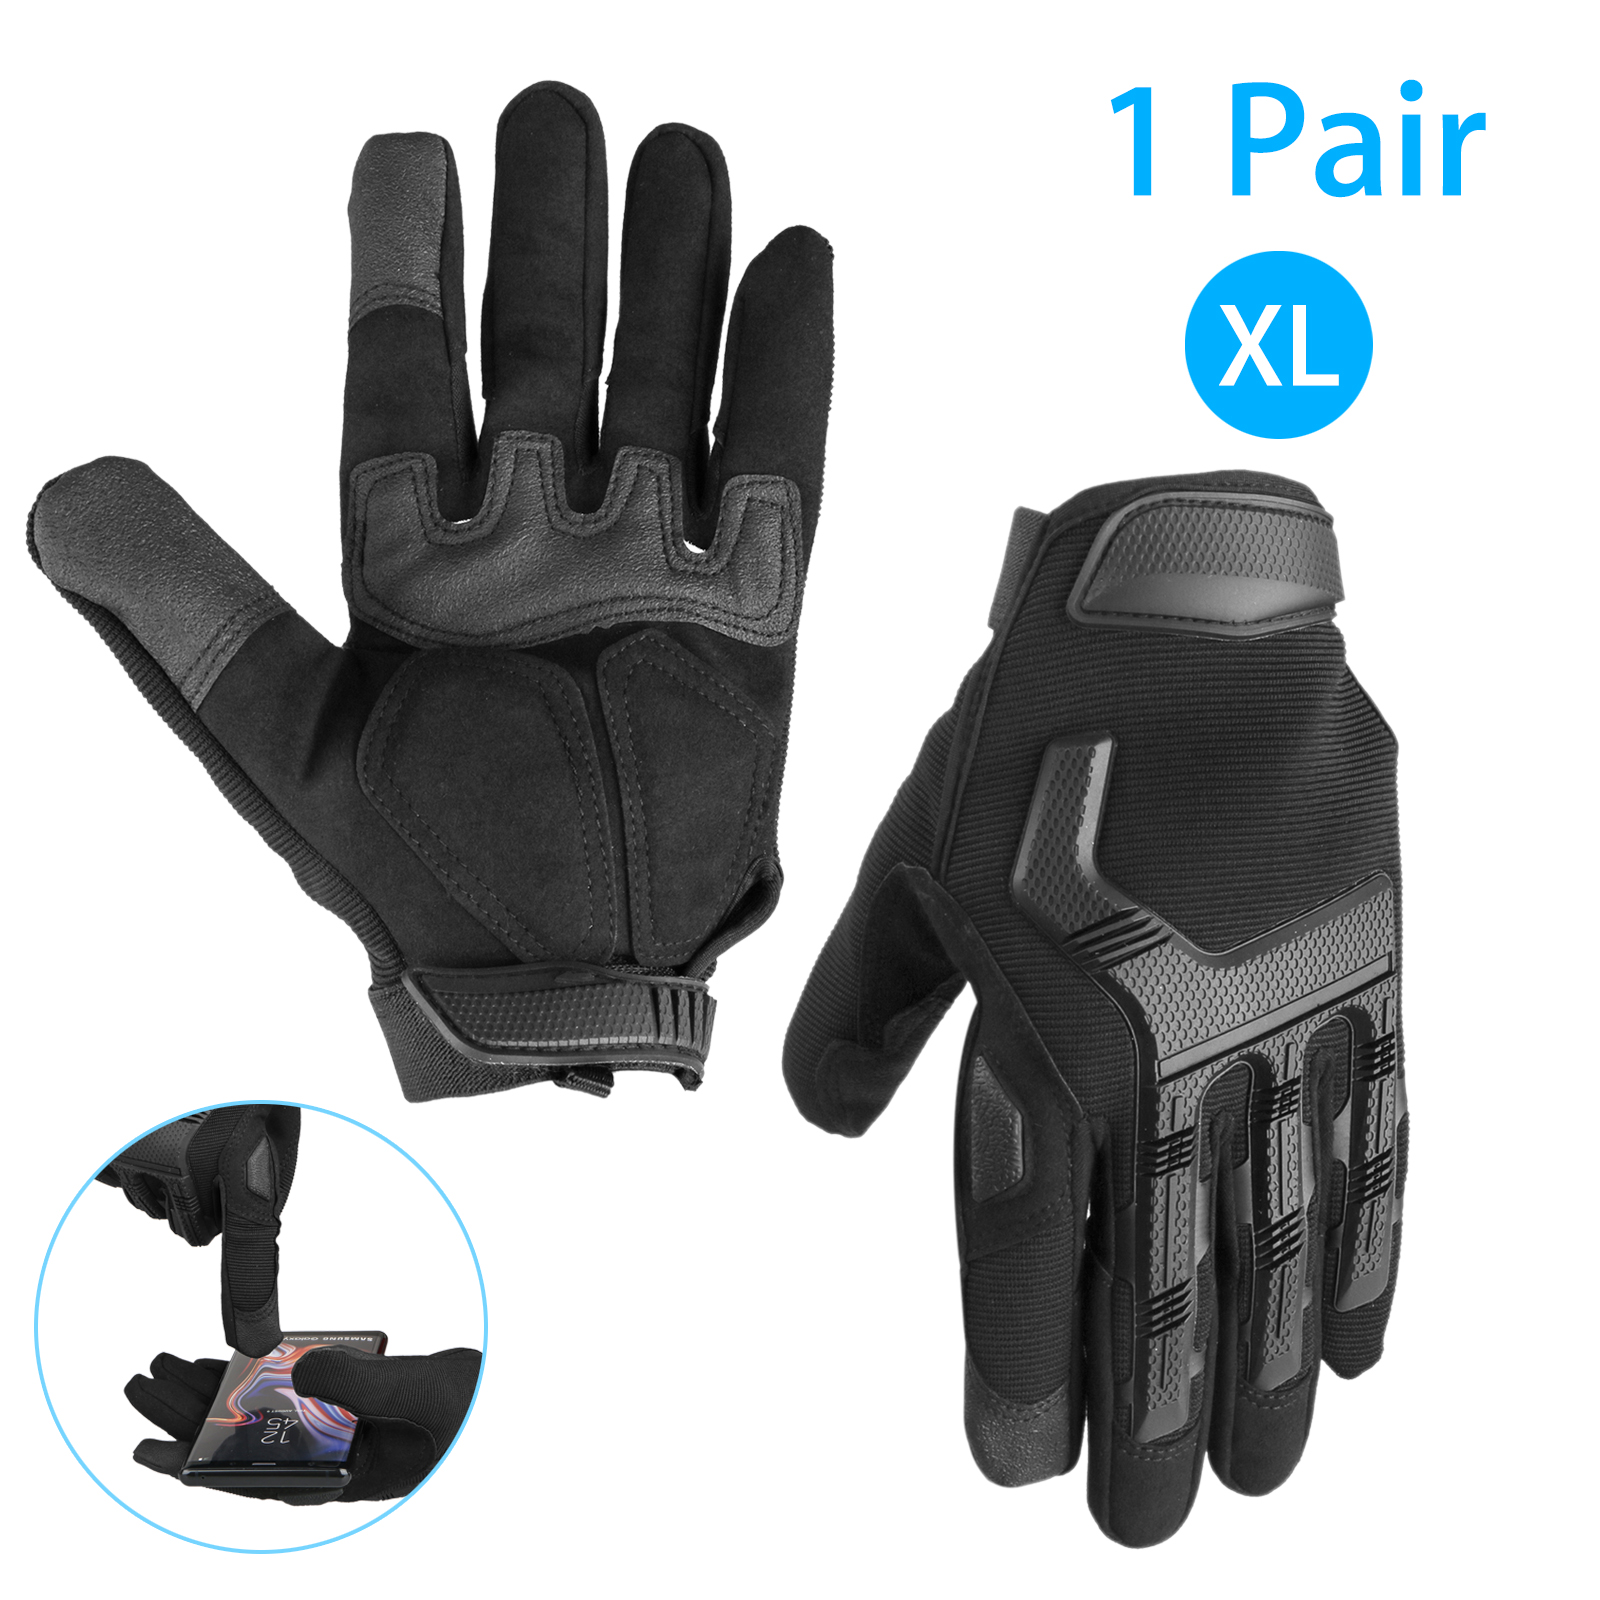 Motorcycle Gloves Tactical Gloves with Touchscreen Finger Leather and Hard Rubber Knuckle Guard, Military Airsoft Paintball Bike Cycling Climbing Hiking Hunting Shooting Work Gloves for Men Women